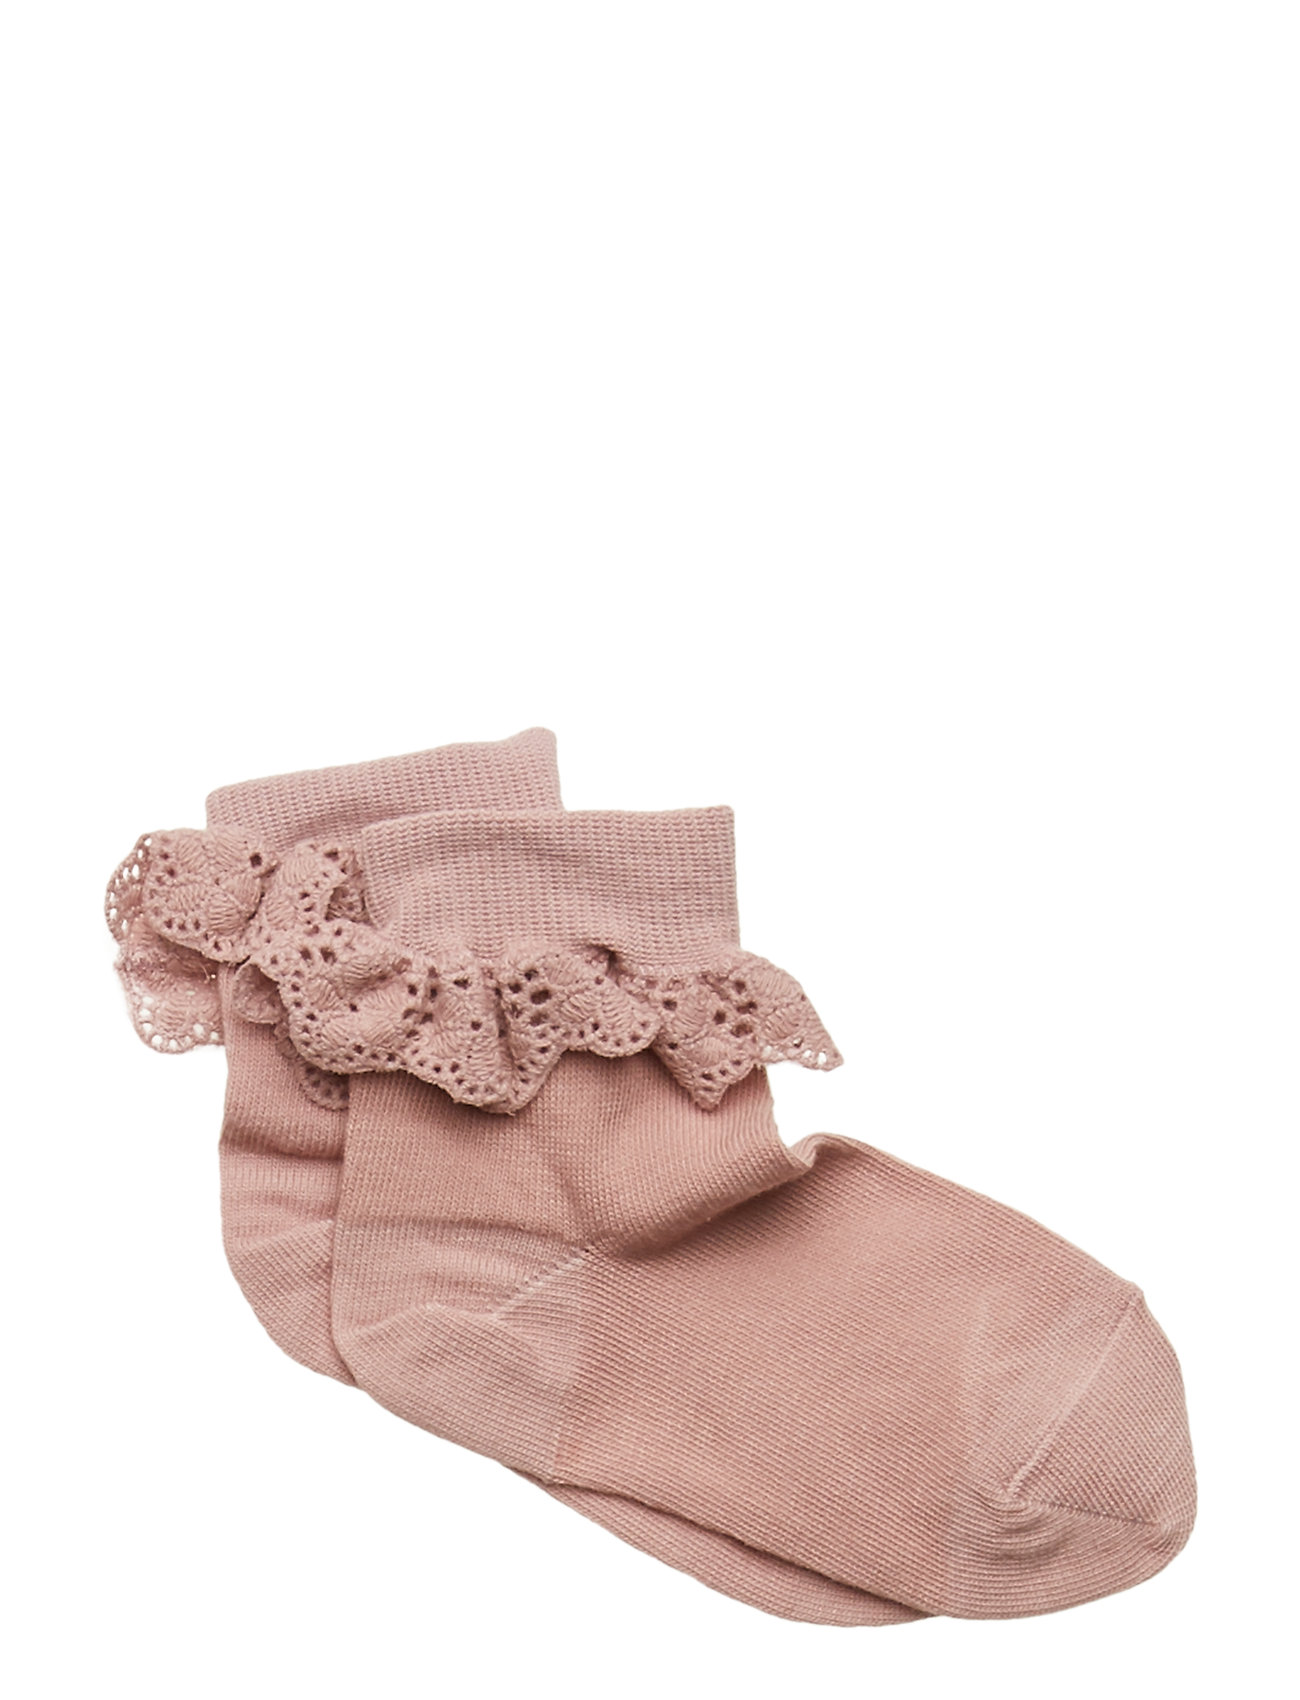 mp Denmark ANKLESOCK WITH TRIMMED LACE - WOOD ROSE